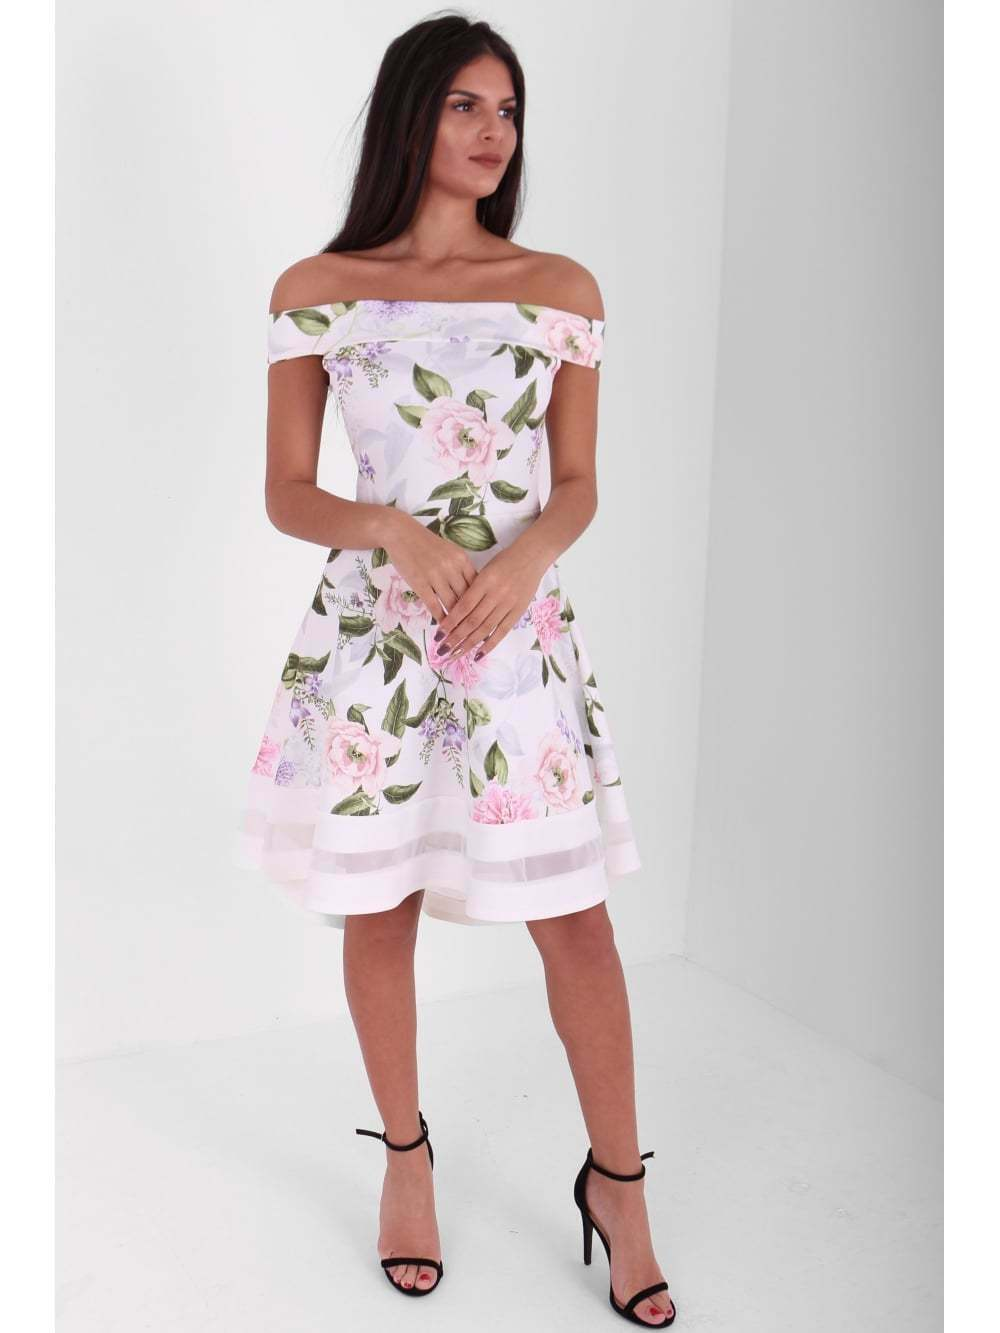 Floral ladies dress wedding guest outfit race day occasion for Daytime dresses for wedding guests